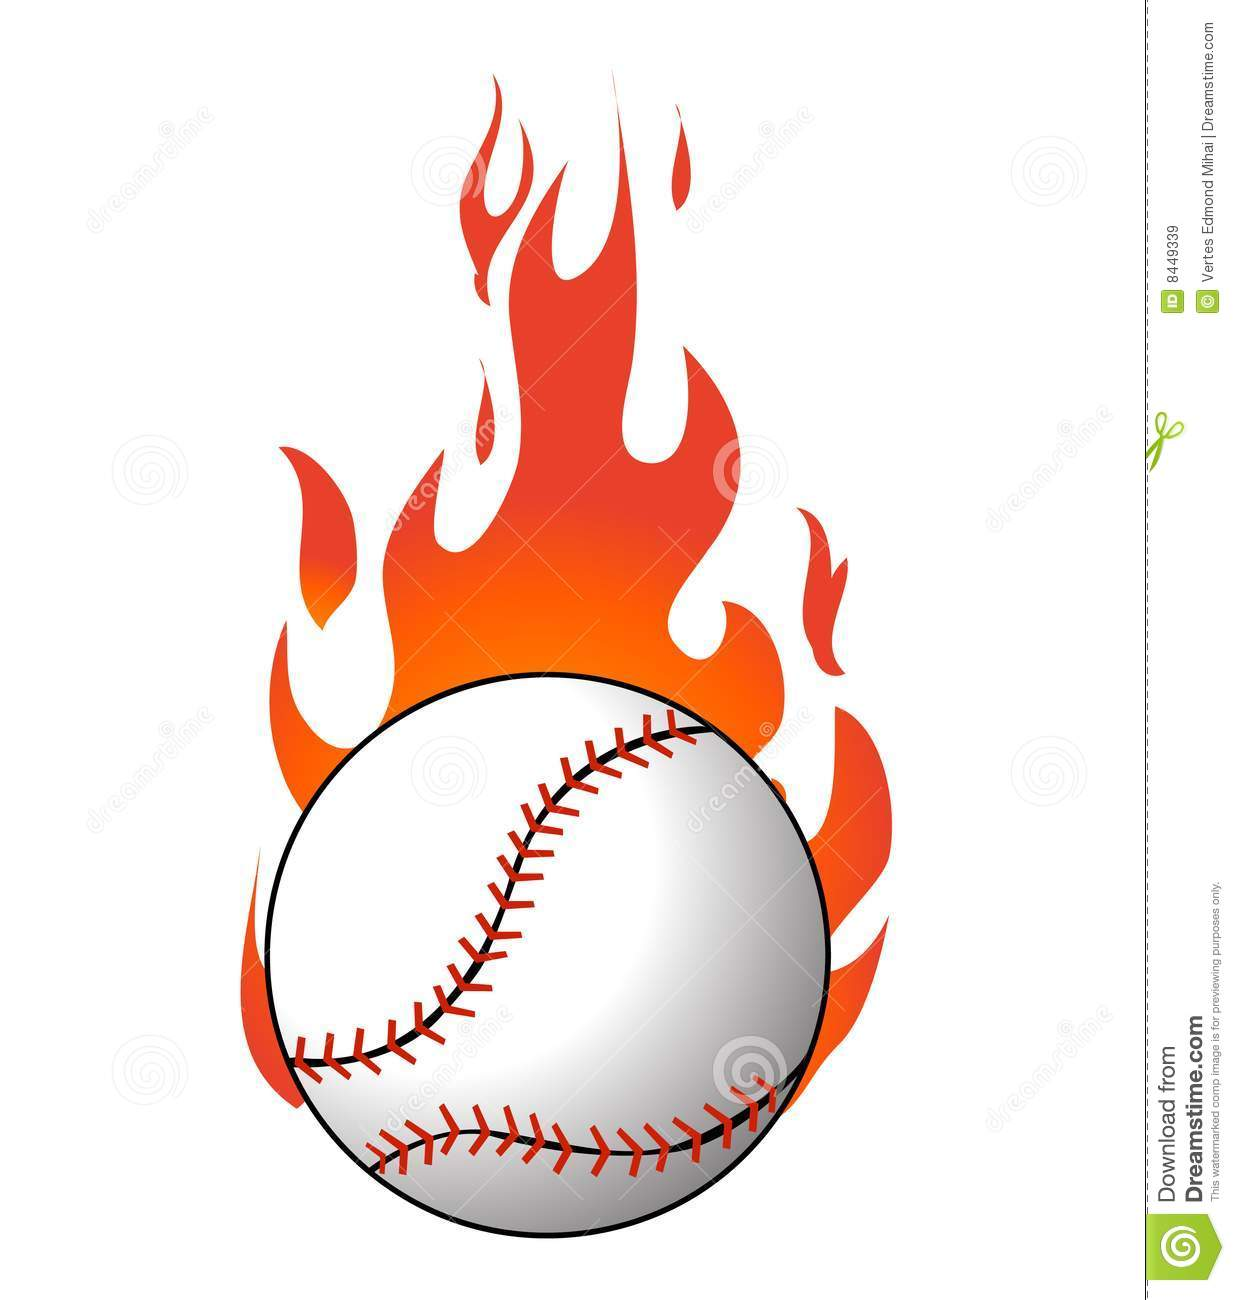 Flaming baseball clipart clip freeuse Baseball Flames Stock Photos, Images, & Pictures - 107 Images clip freeuse